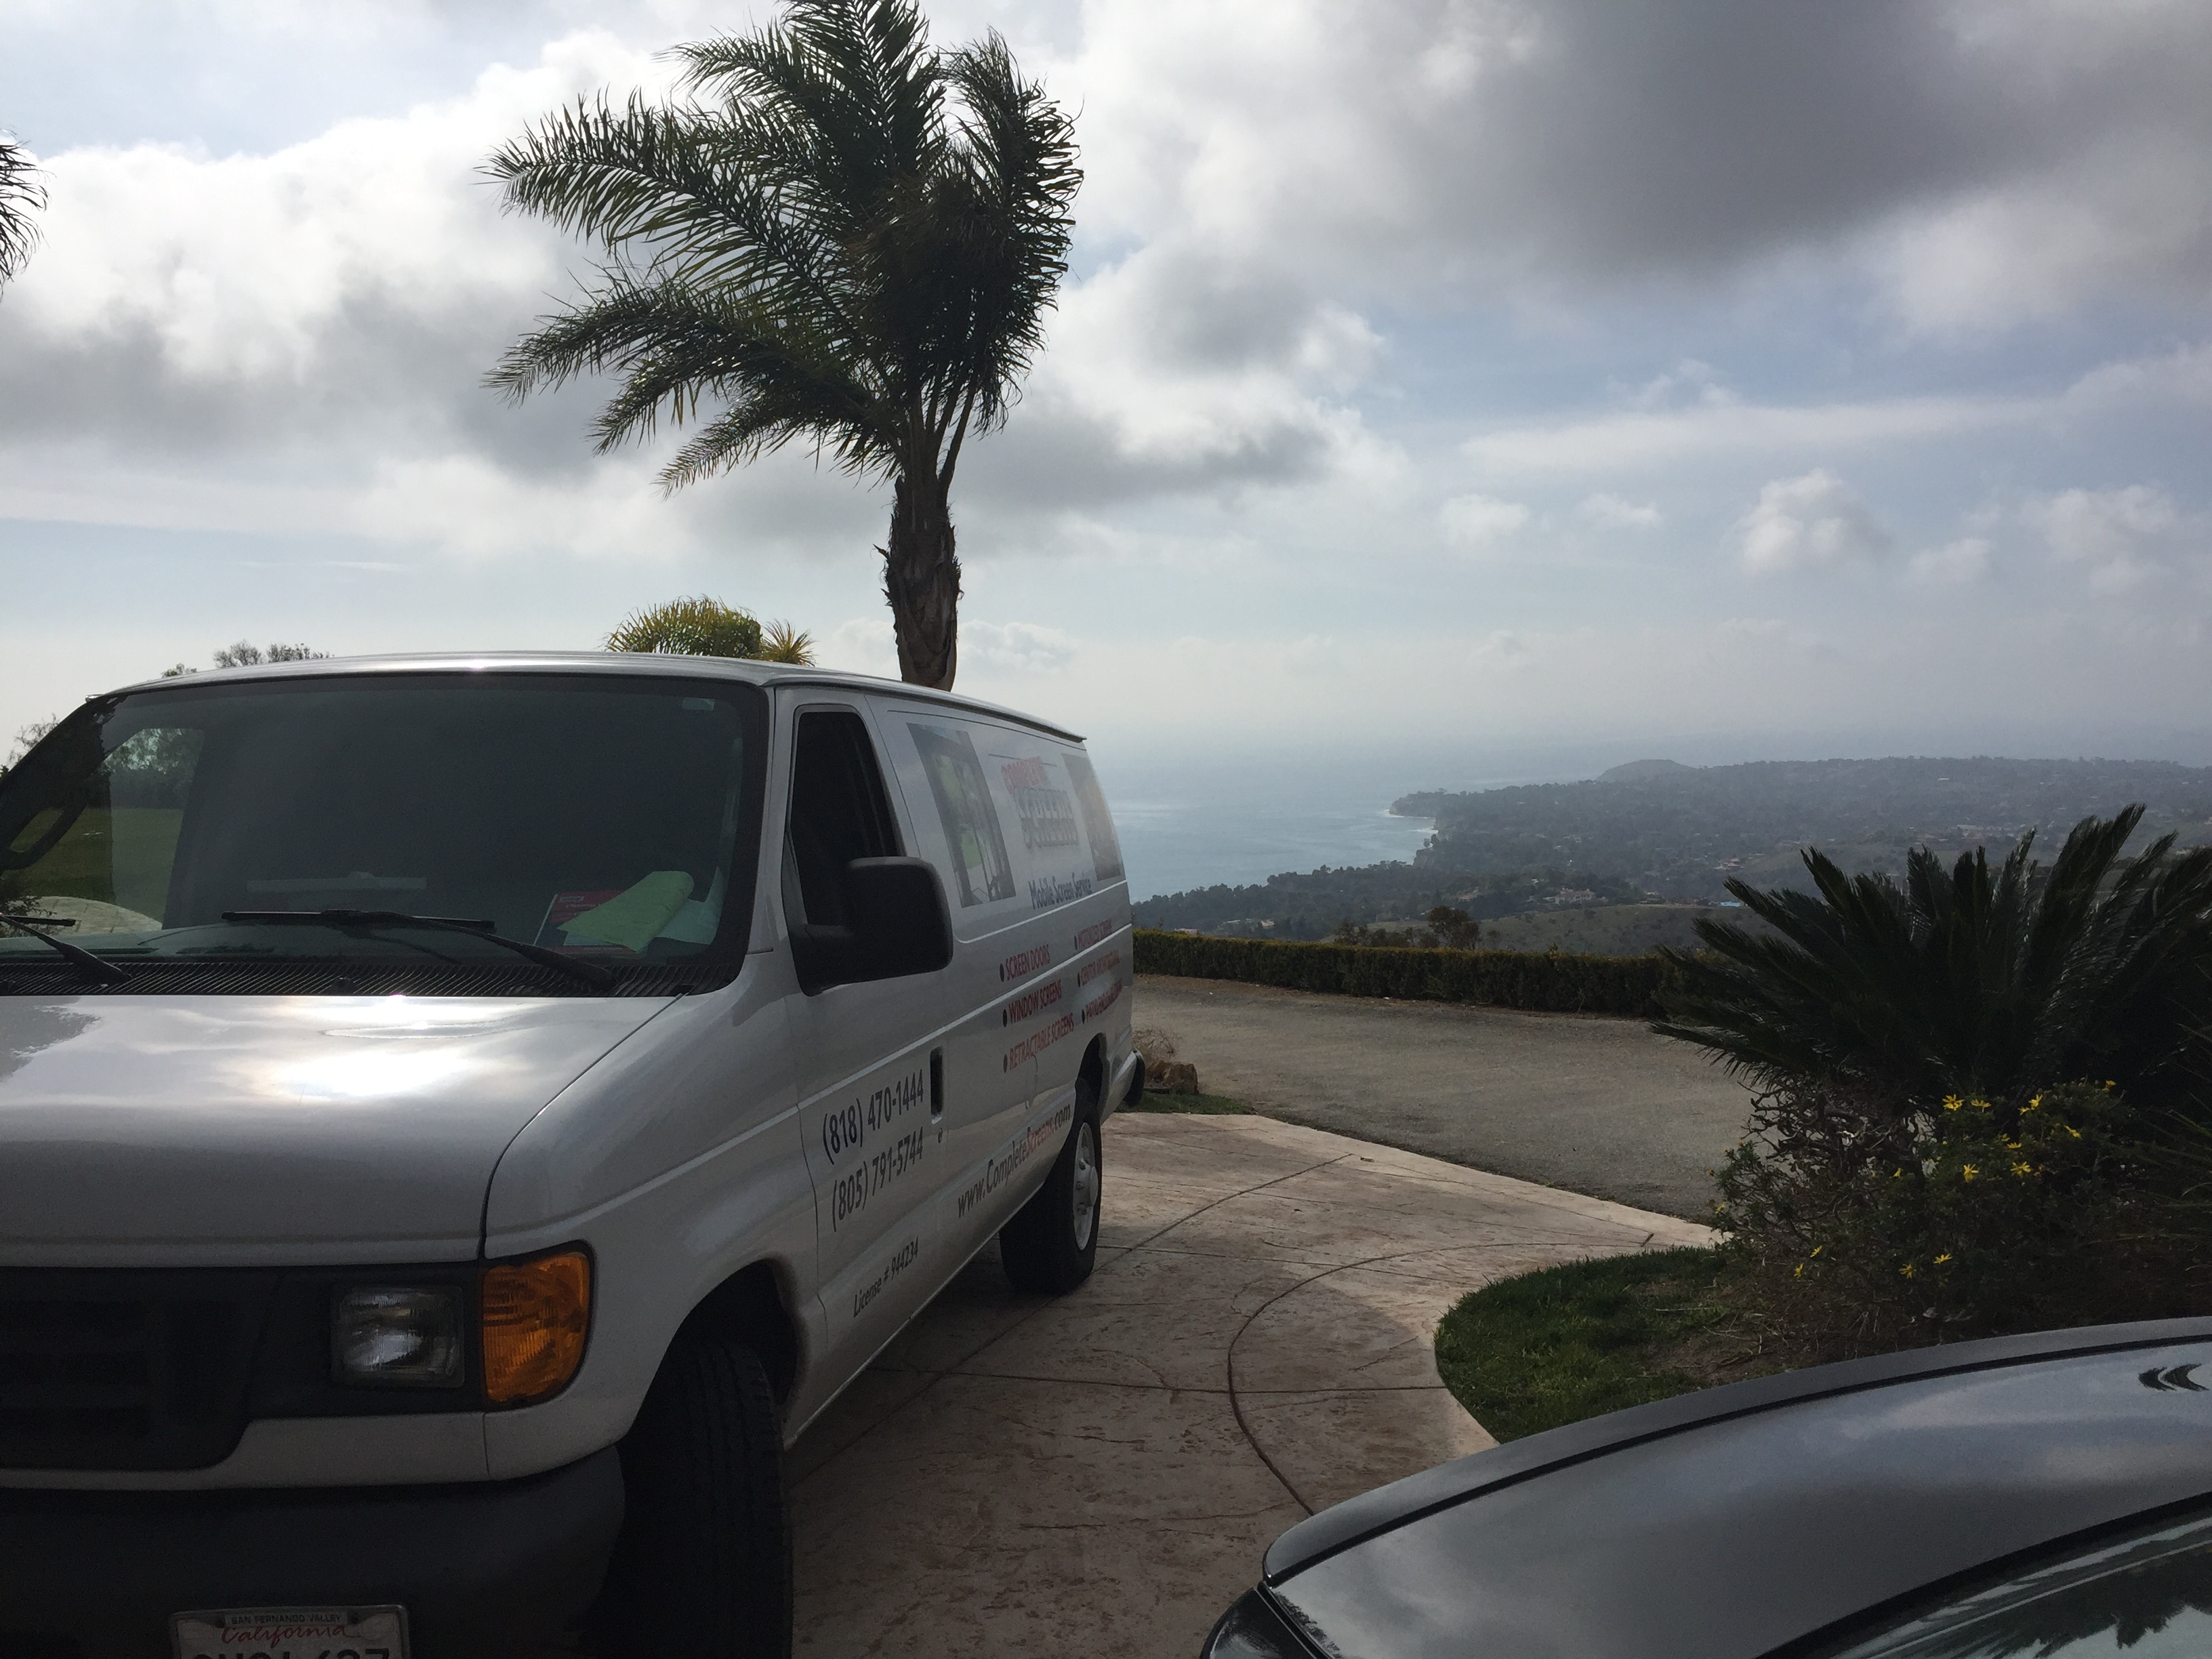 Mobile screen service in Malibu, CA. |